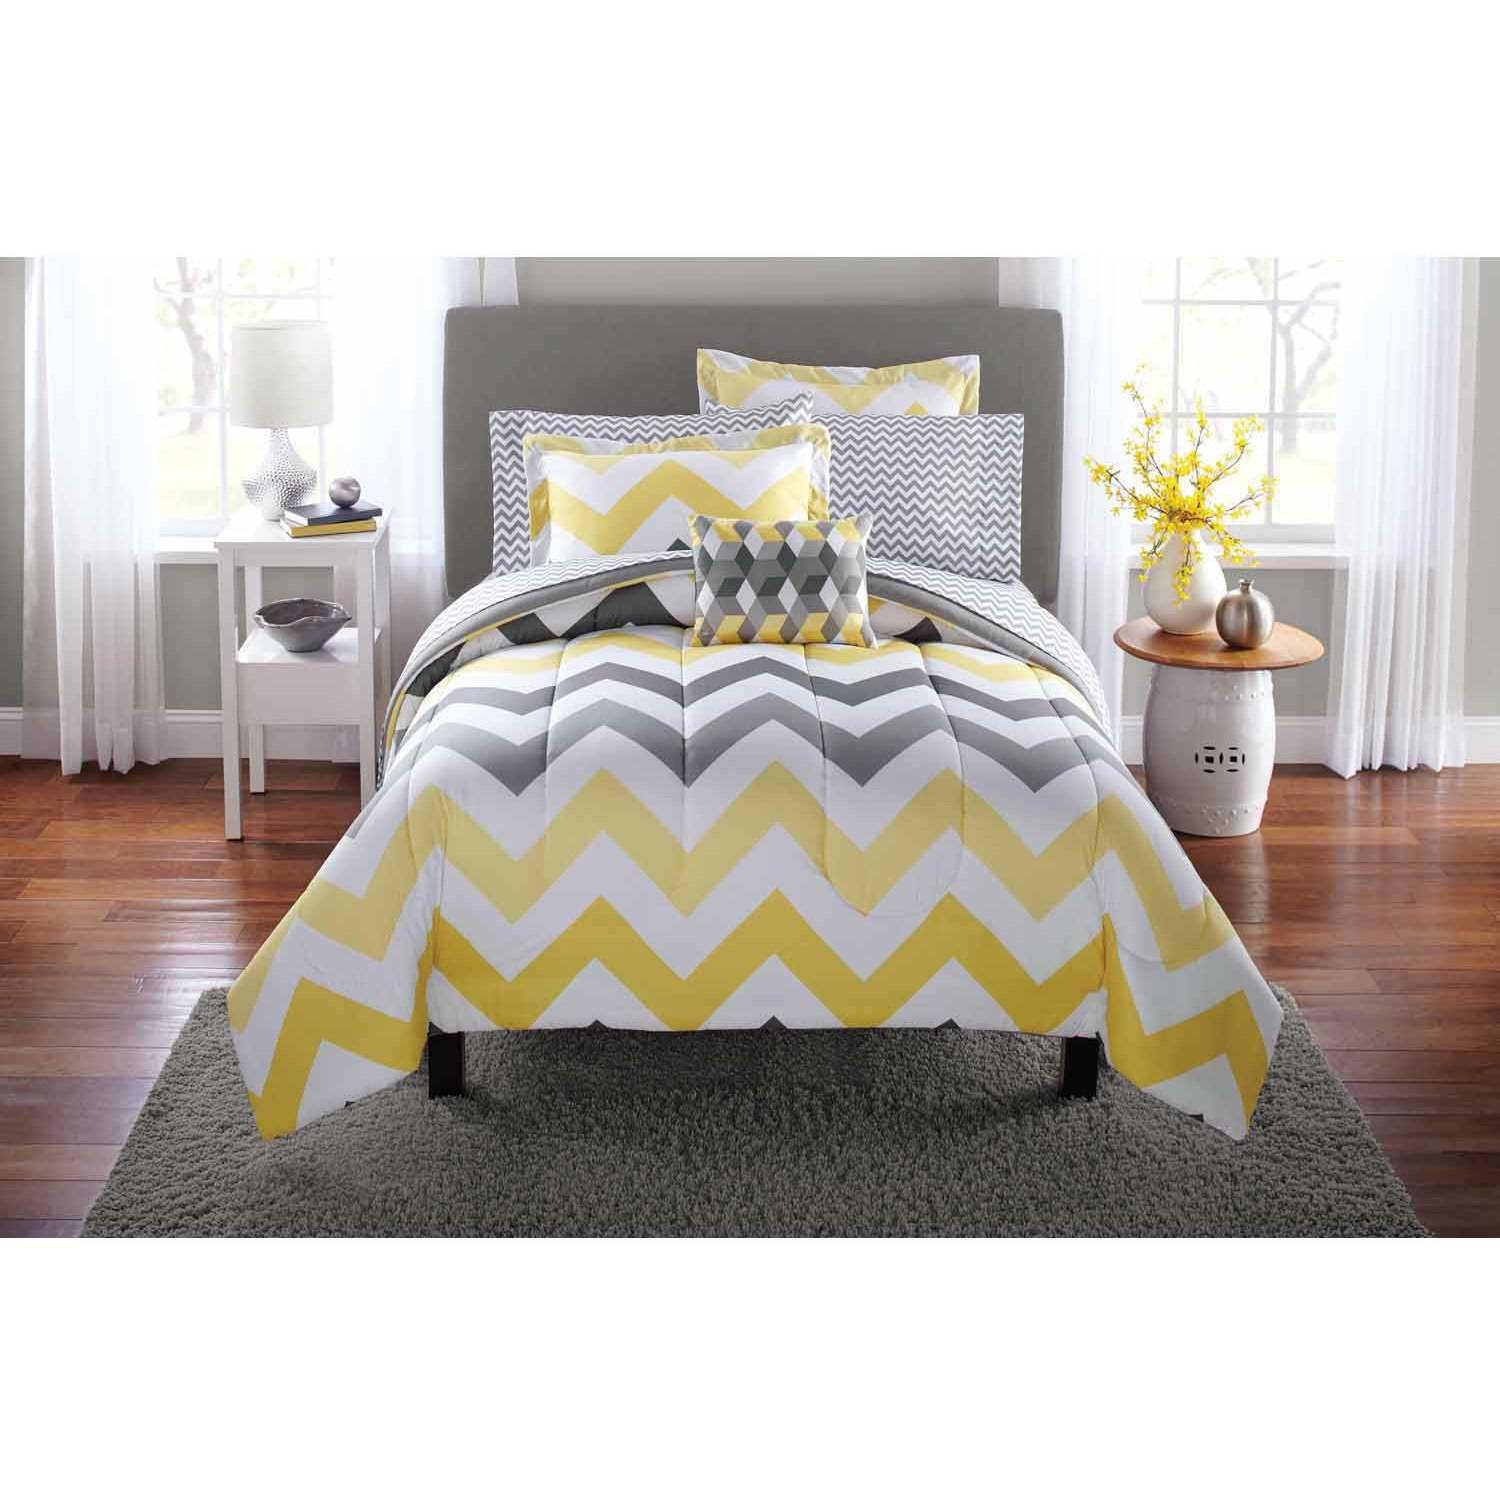 Black and white bedding walmart - Mainstays Yellow Grey Chevron Bed In A Bag Bedding Comforter Set Walmart Com